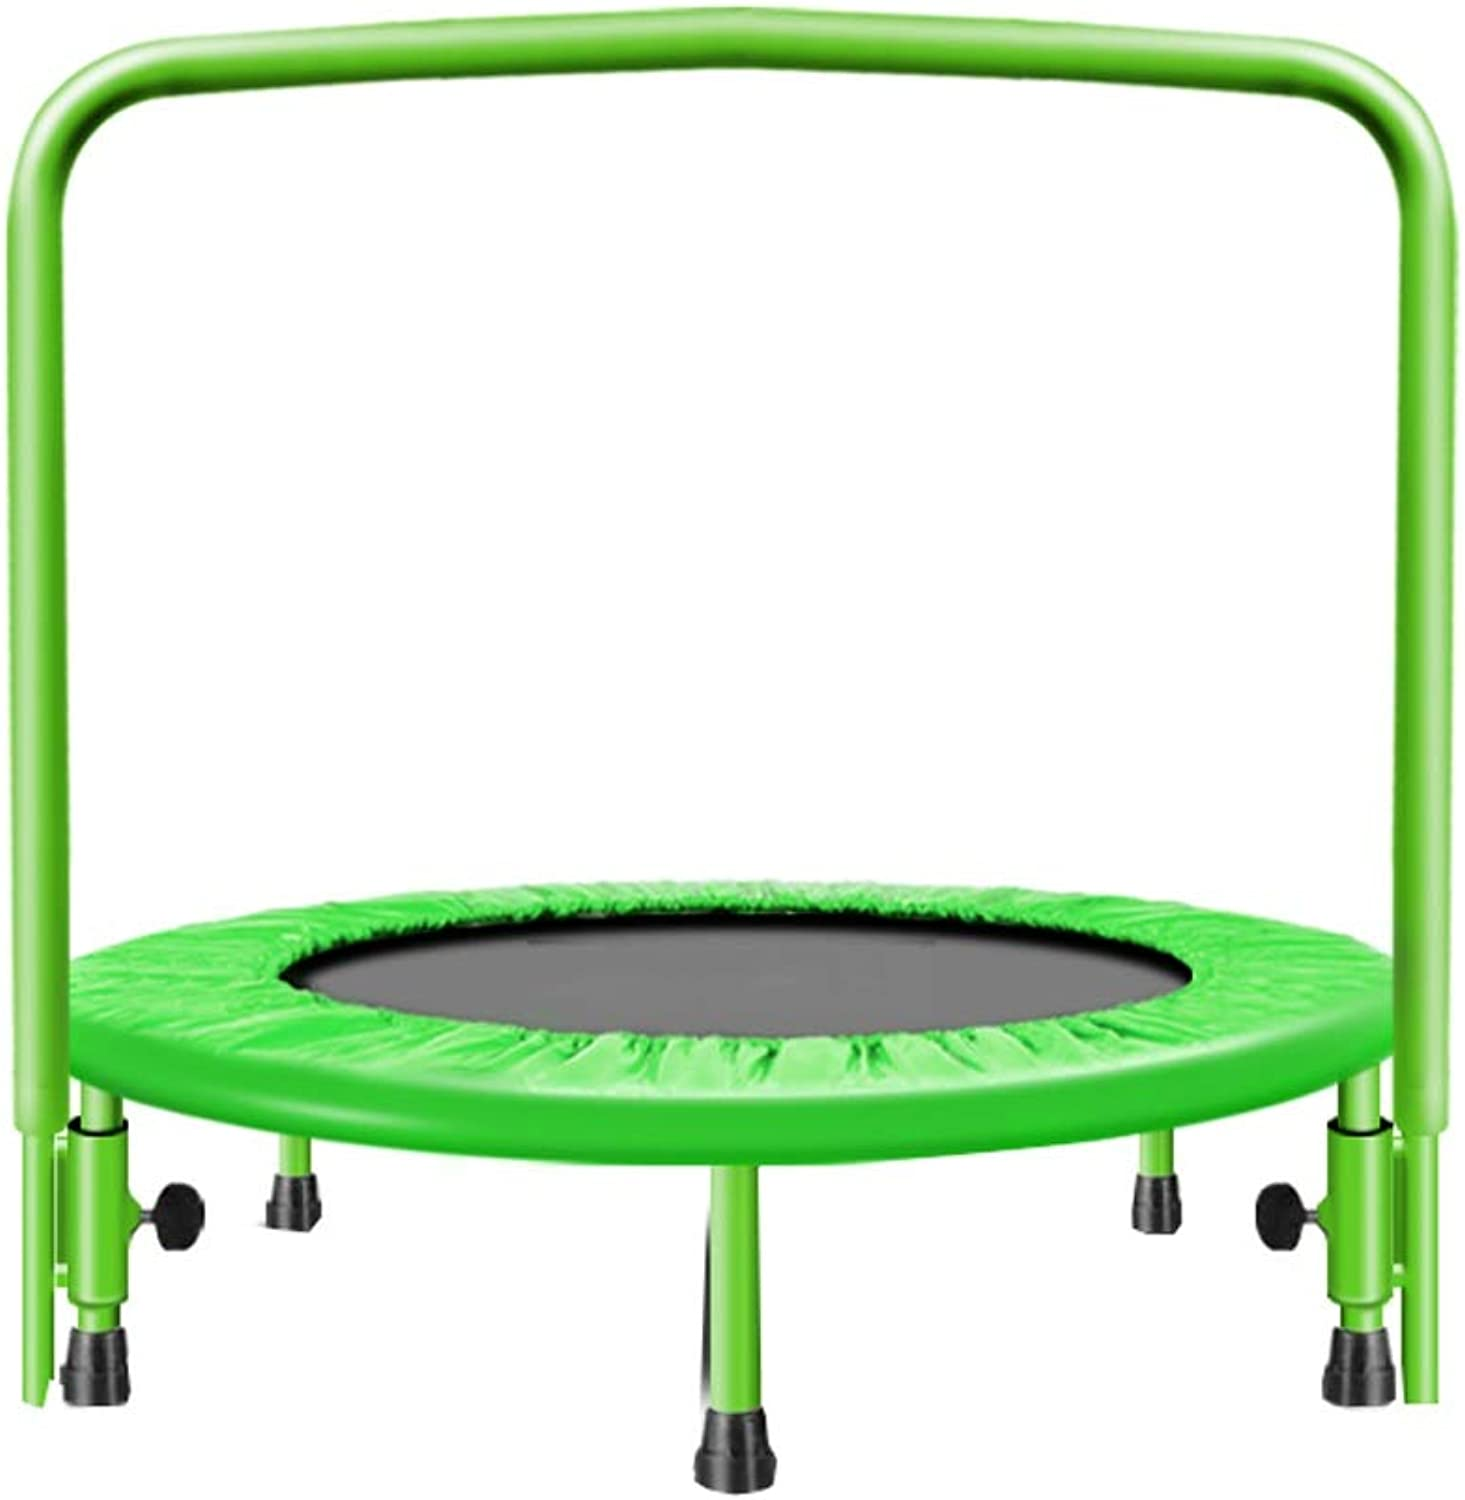 RY-Trampo Fitness Trampoline, Indoor For Adult Gym Slimming Aerobic Elastic Gymnastics Safety Jumping Lose Weight